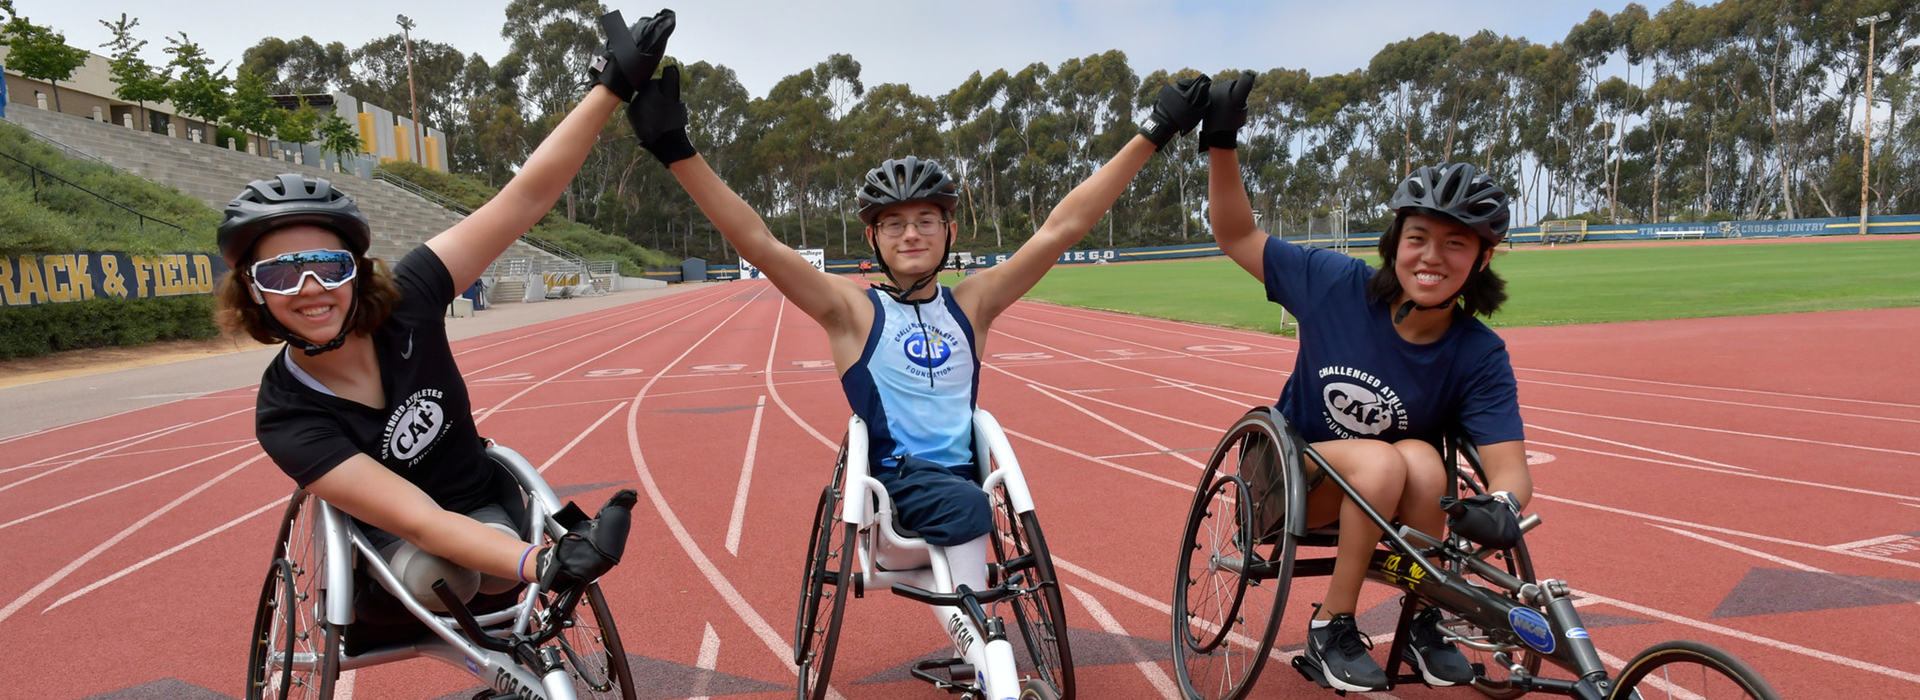 wheelchair racers at CAF Youth Paratriathlon Camp 2018_image